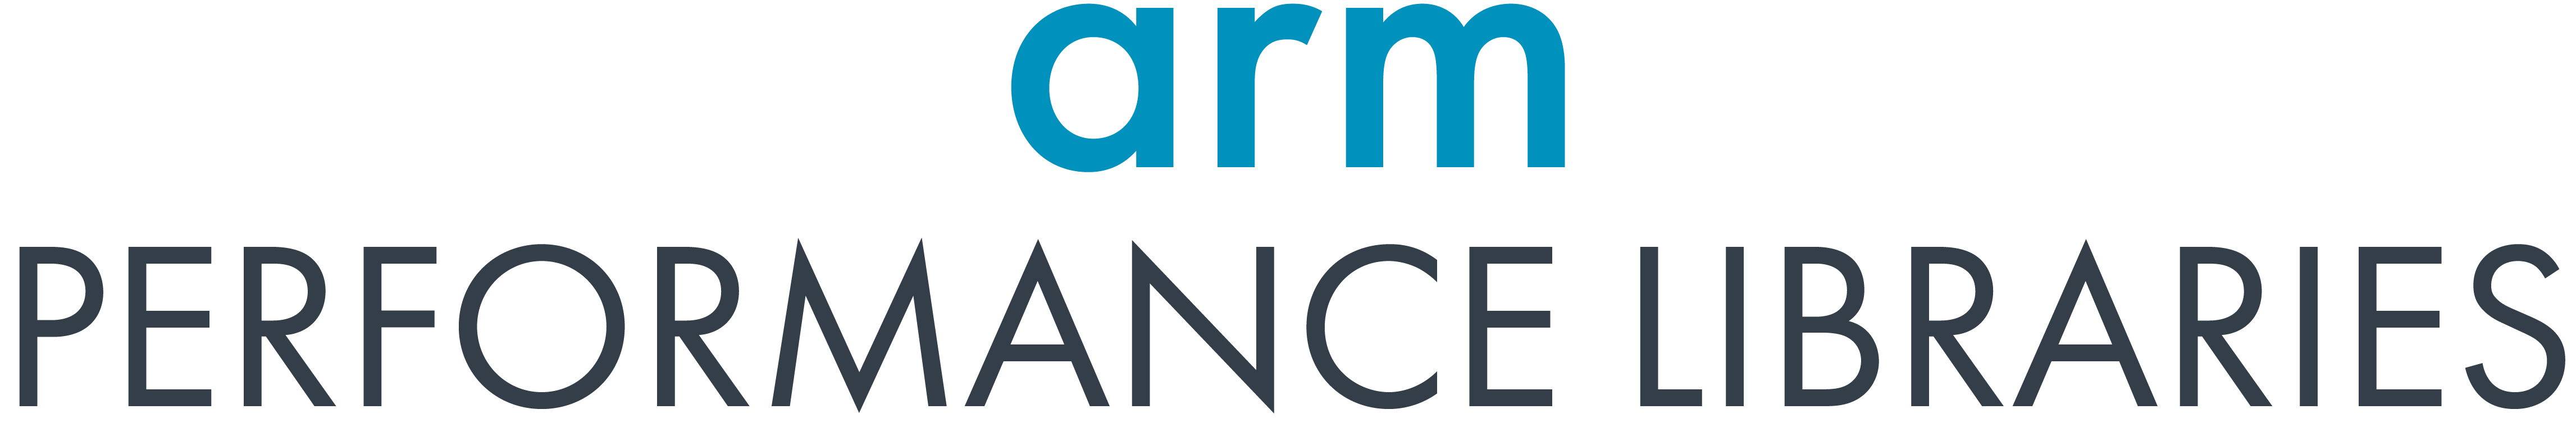 Arm Performance Libraries